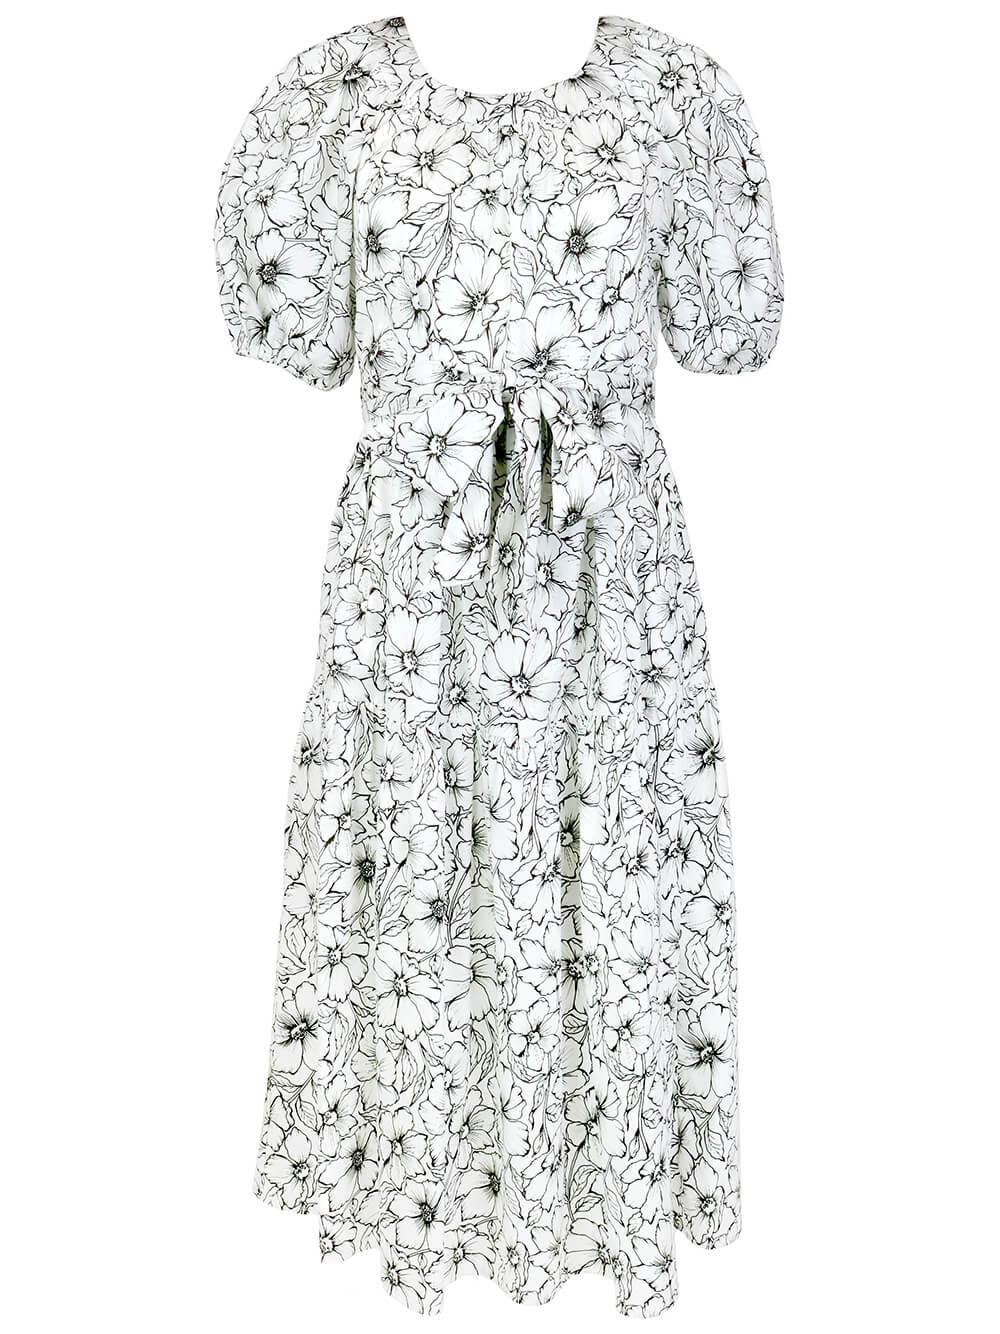 Audrey Etched Floral Dress Item # CLD49